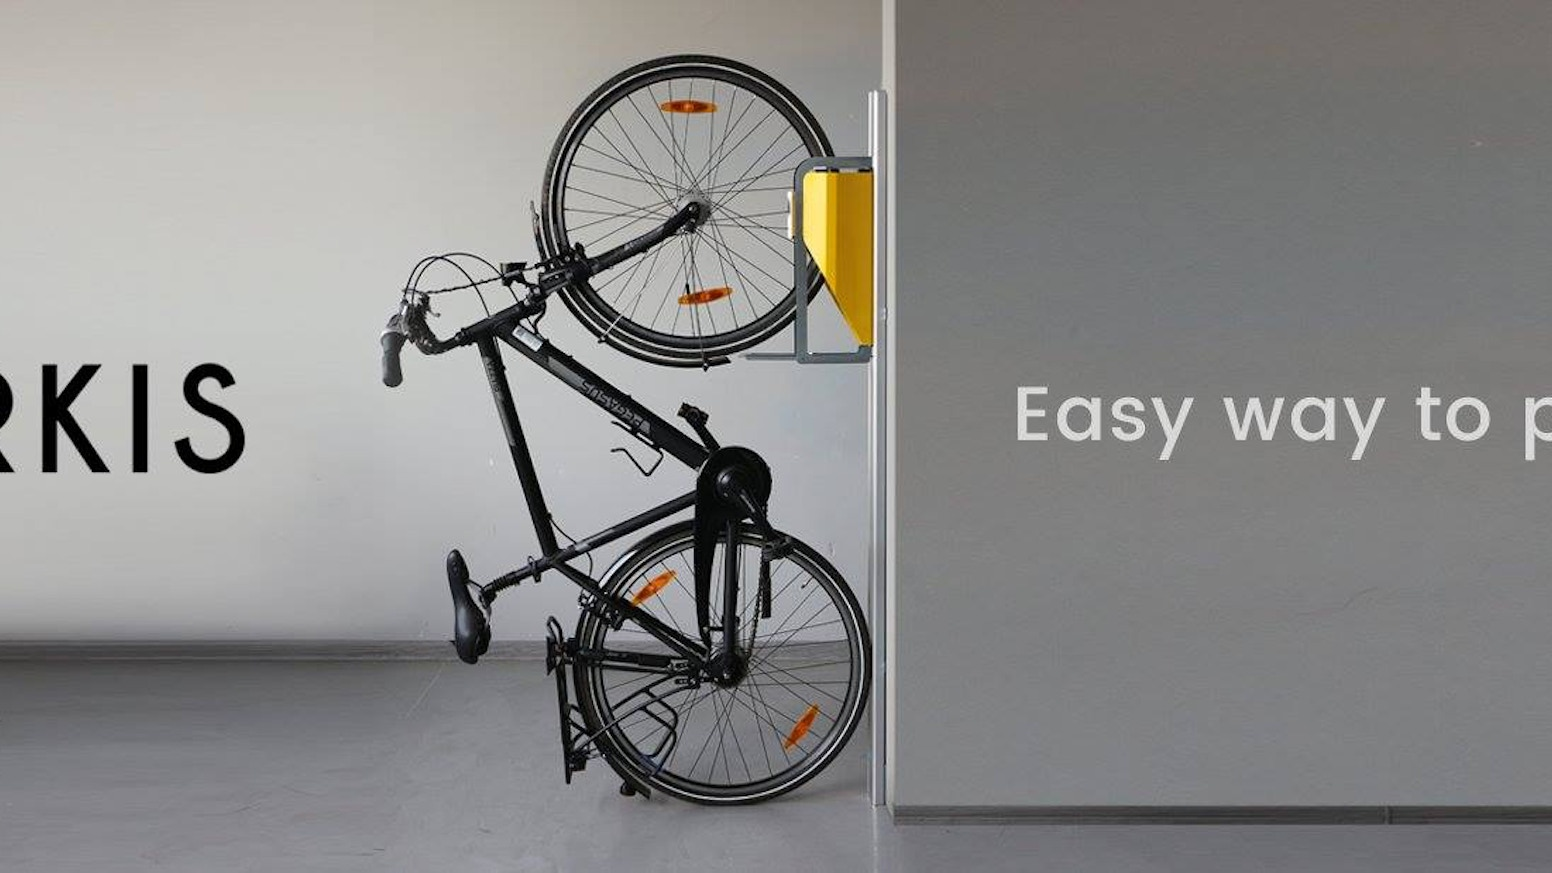 Parkis Space Saving Bicycle Lift By Giedre Kickstarter